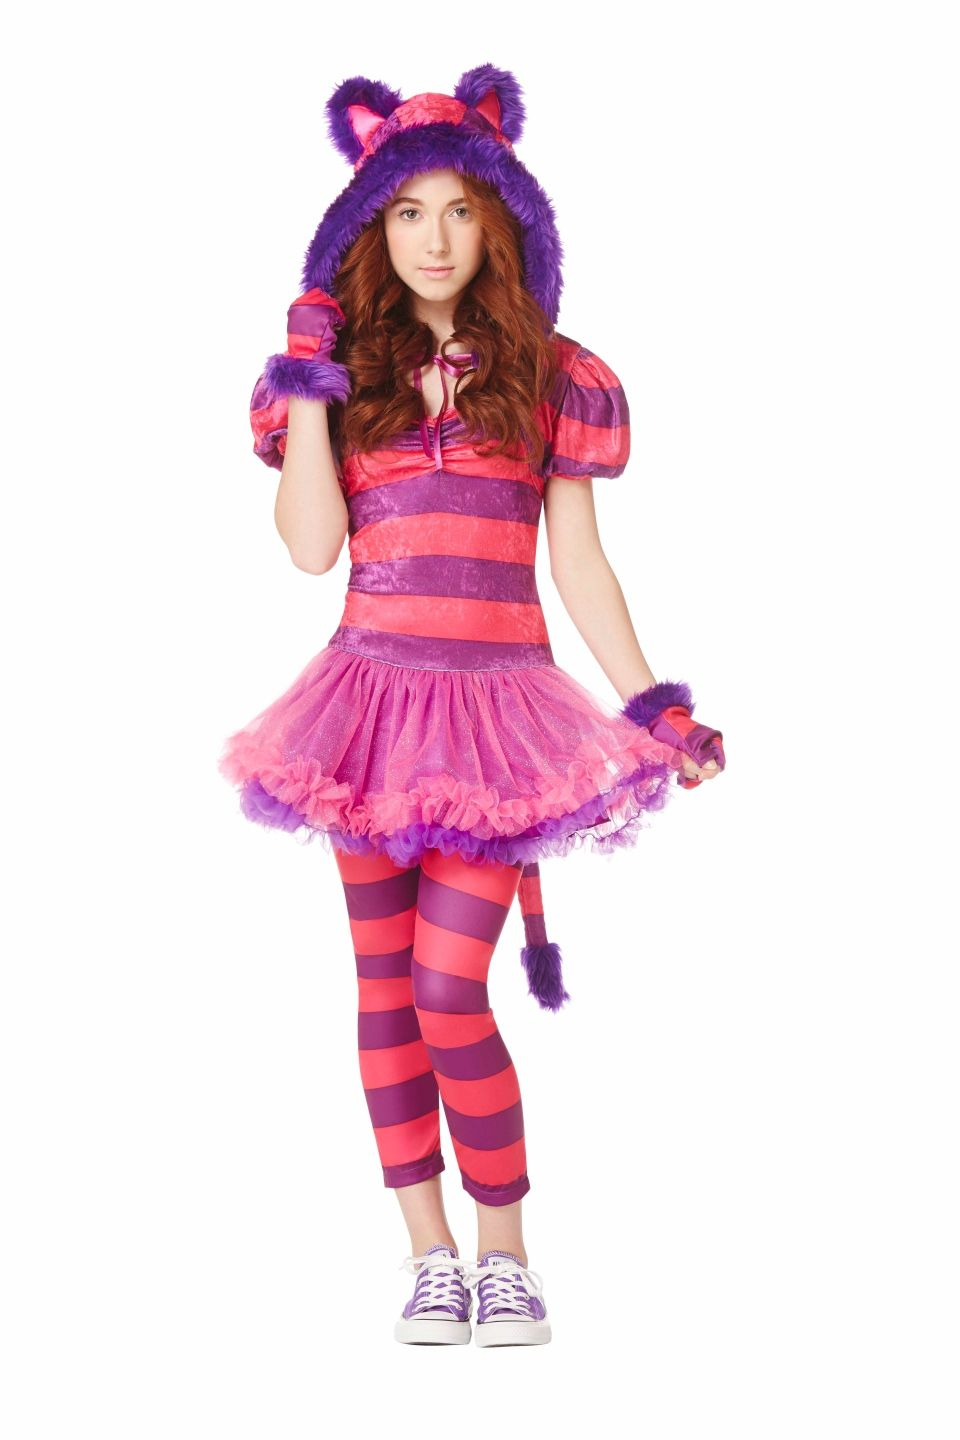 halloween costume ideas for girls age 11 halloween costume ideas halloween costume ideas for - Cat Costume Ideas Halloween